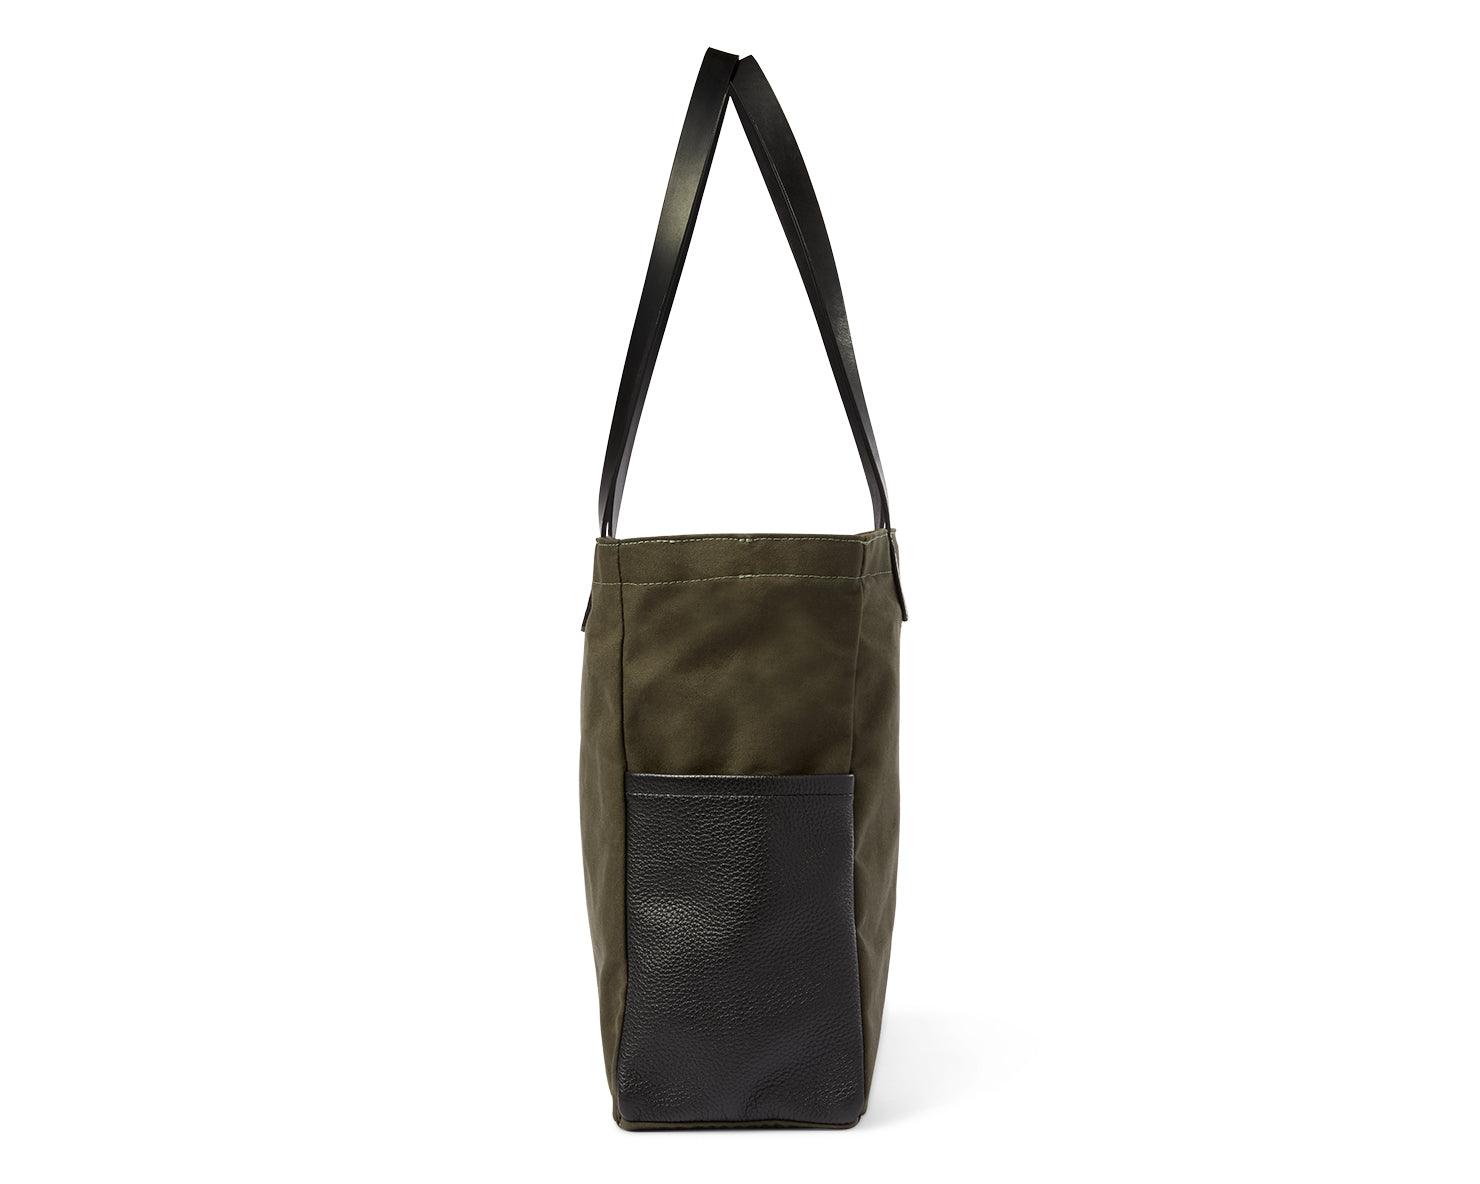 BOX TOTE | KILLSPENCER® - Olive Drab Canvas